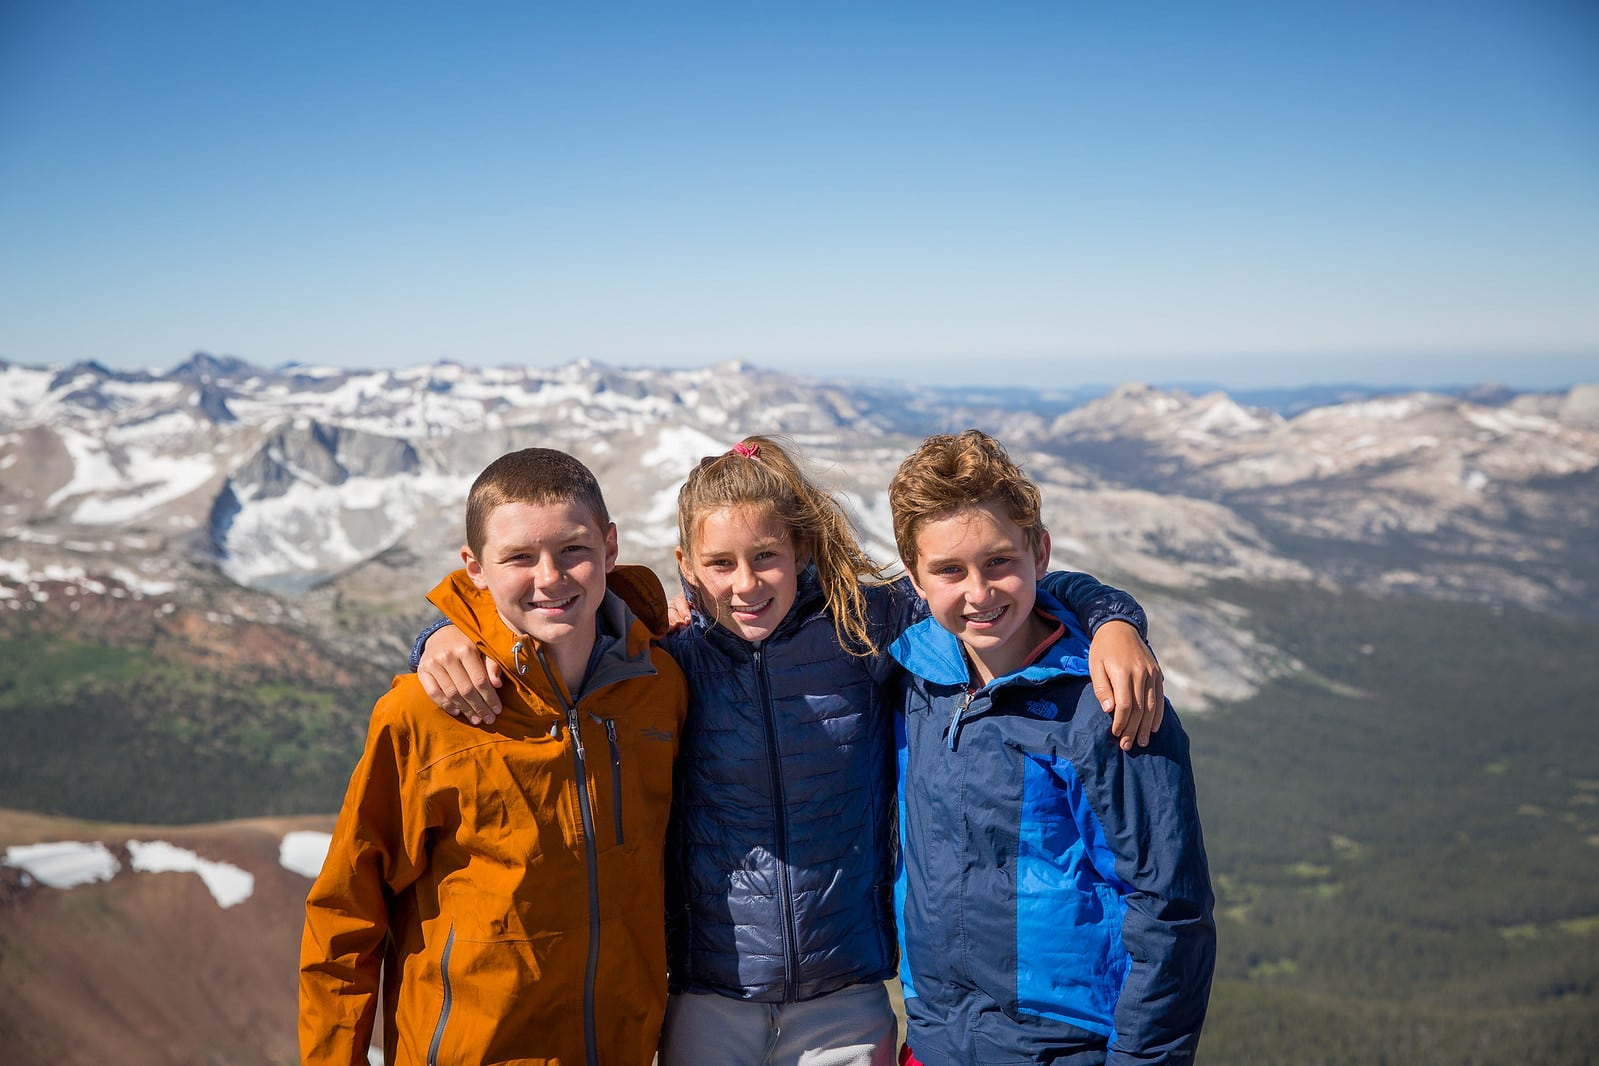 Three friends take a group photo on the summit of a mountain during a teen summer hiking trip